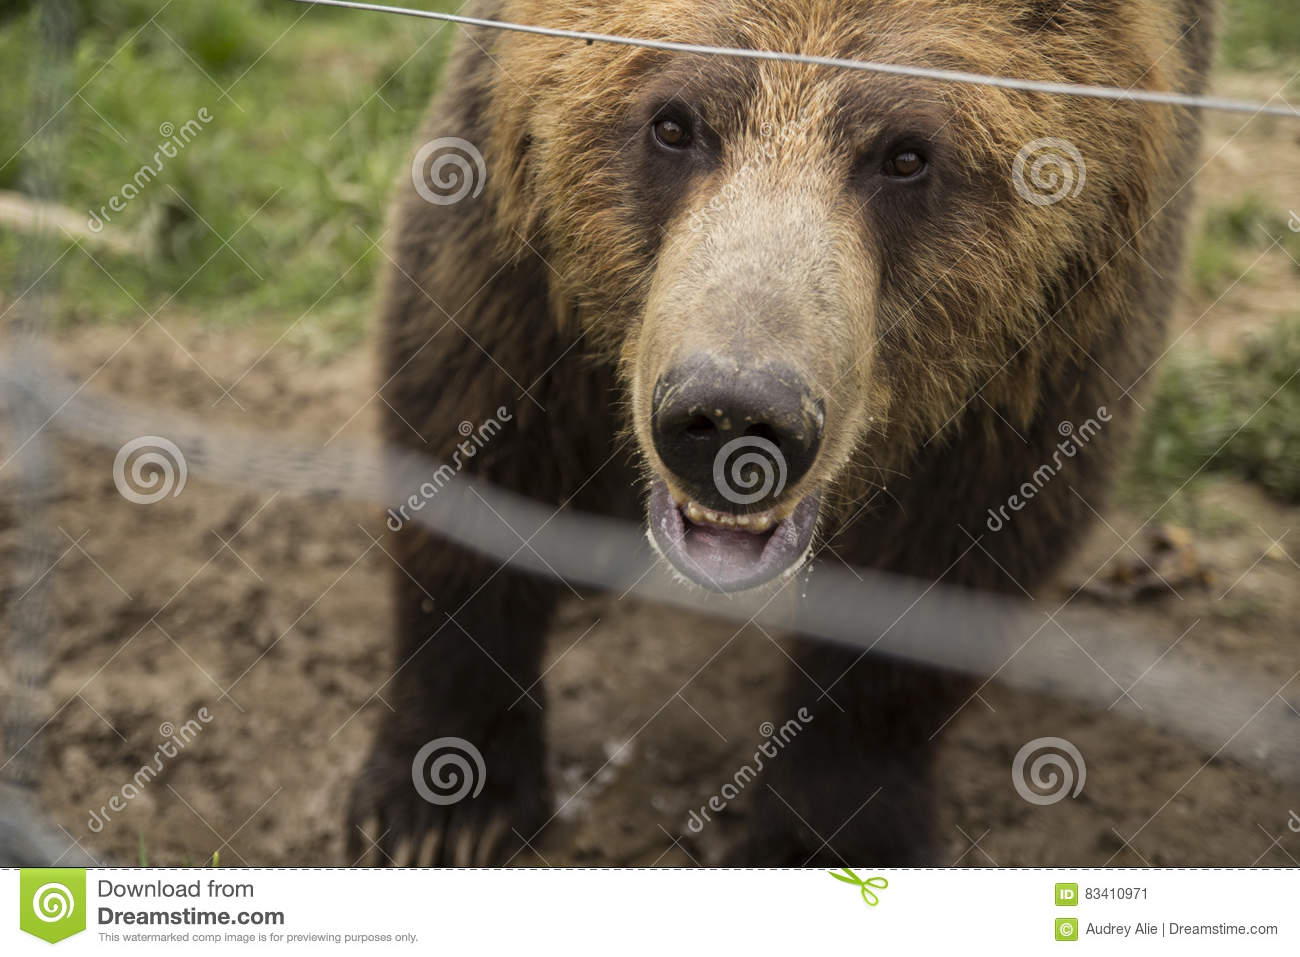 Grizzly bear in a zoo